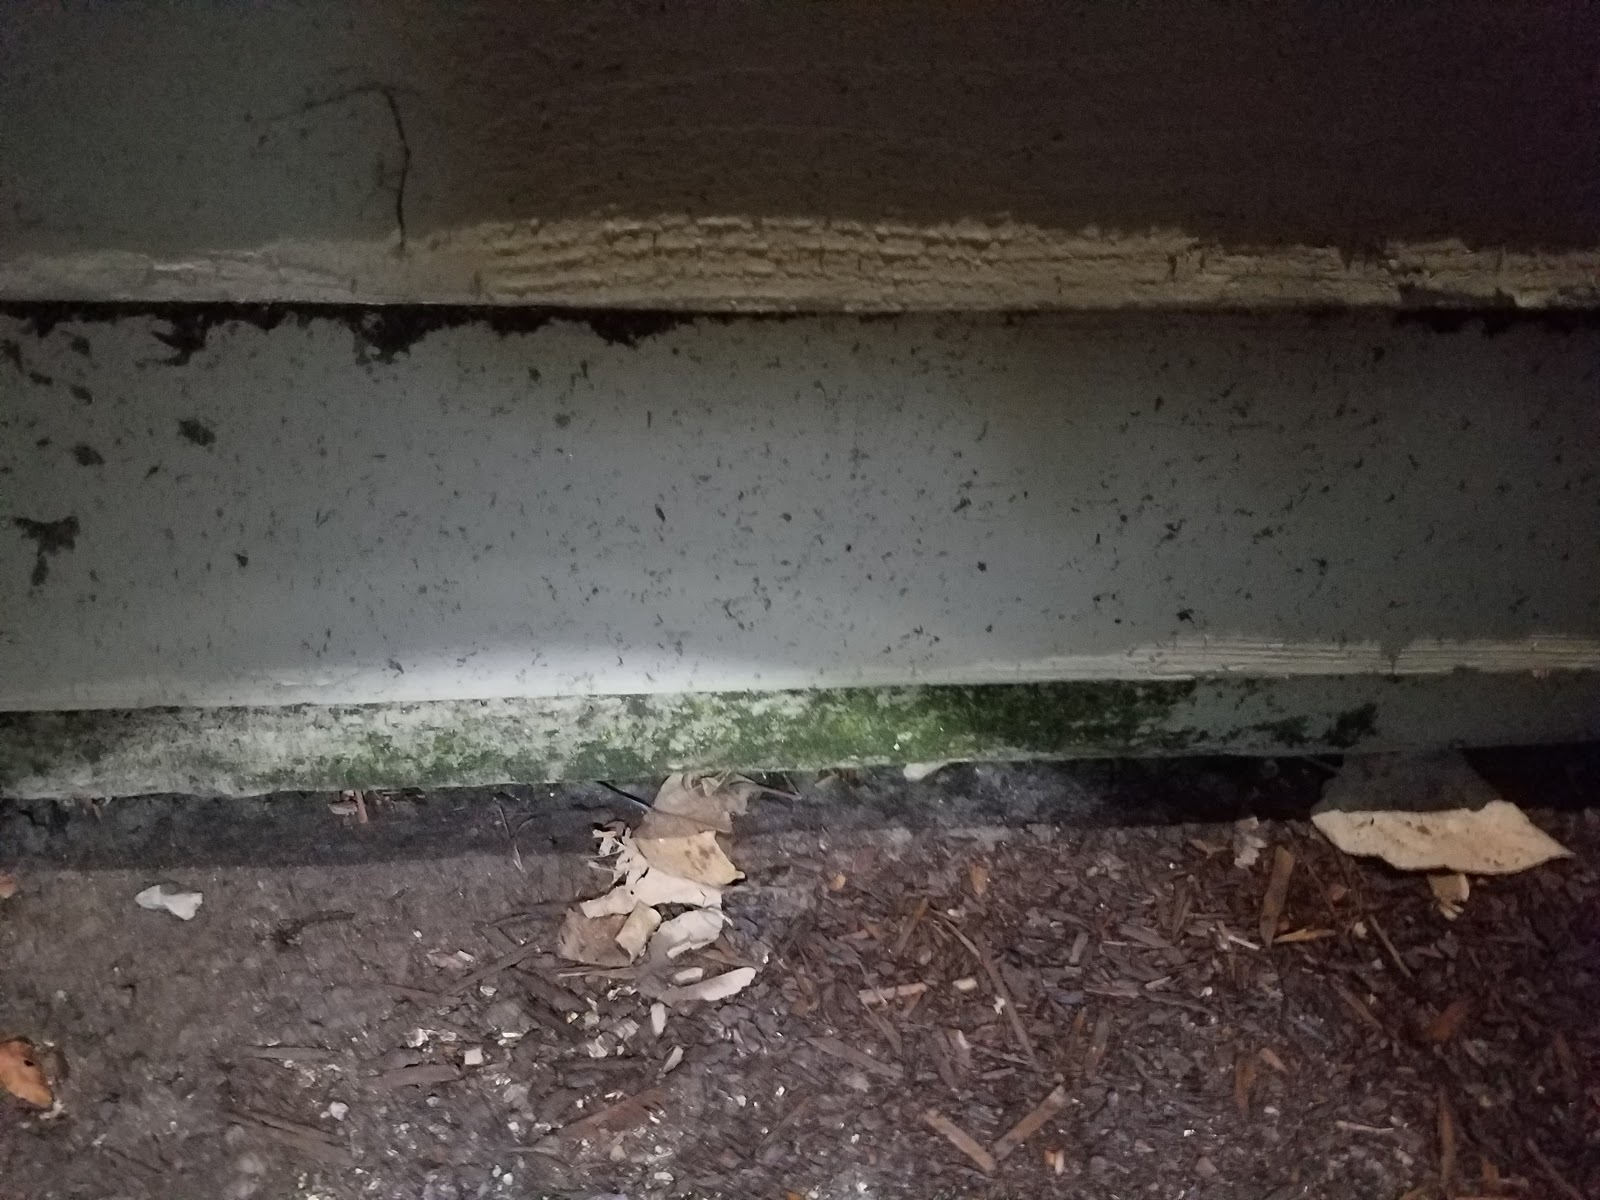 Renton pest control: Getting rid of little black ants in a ...